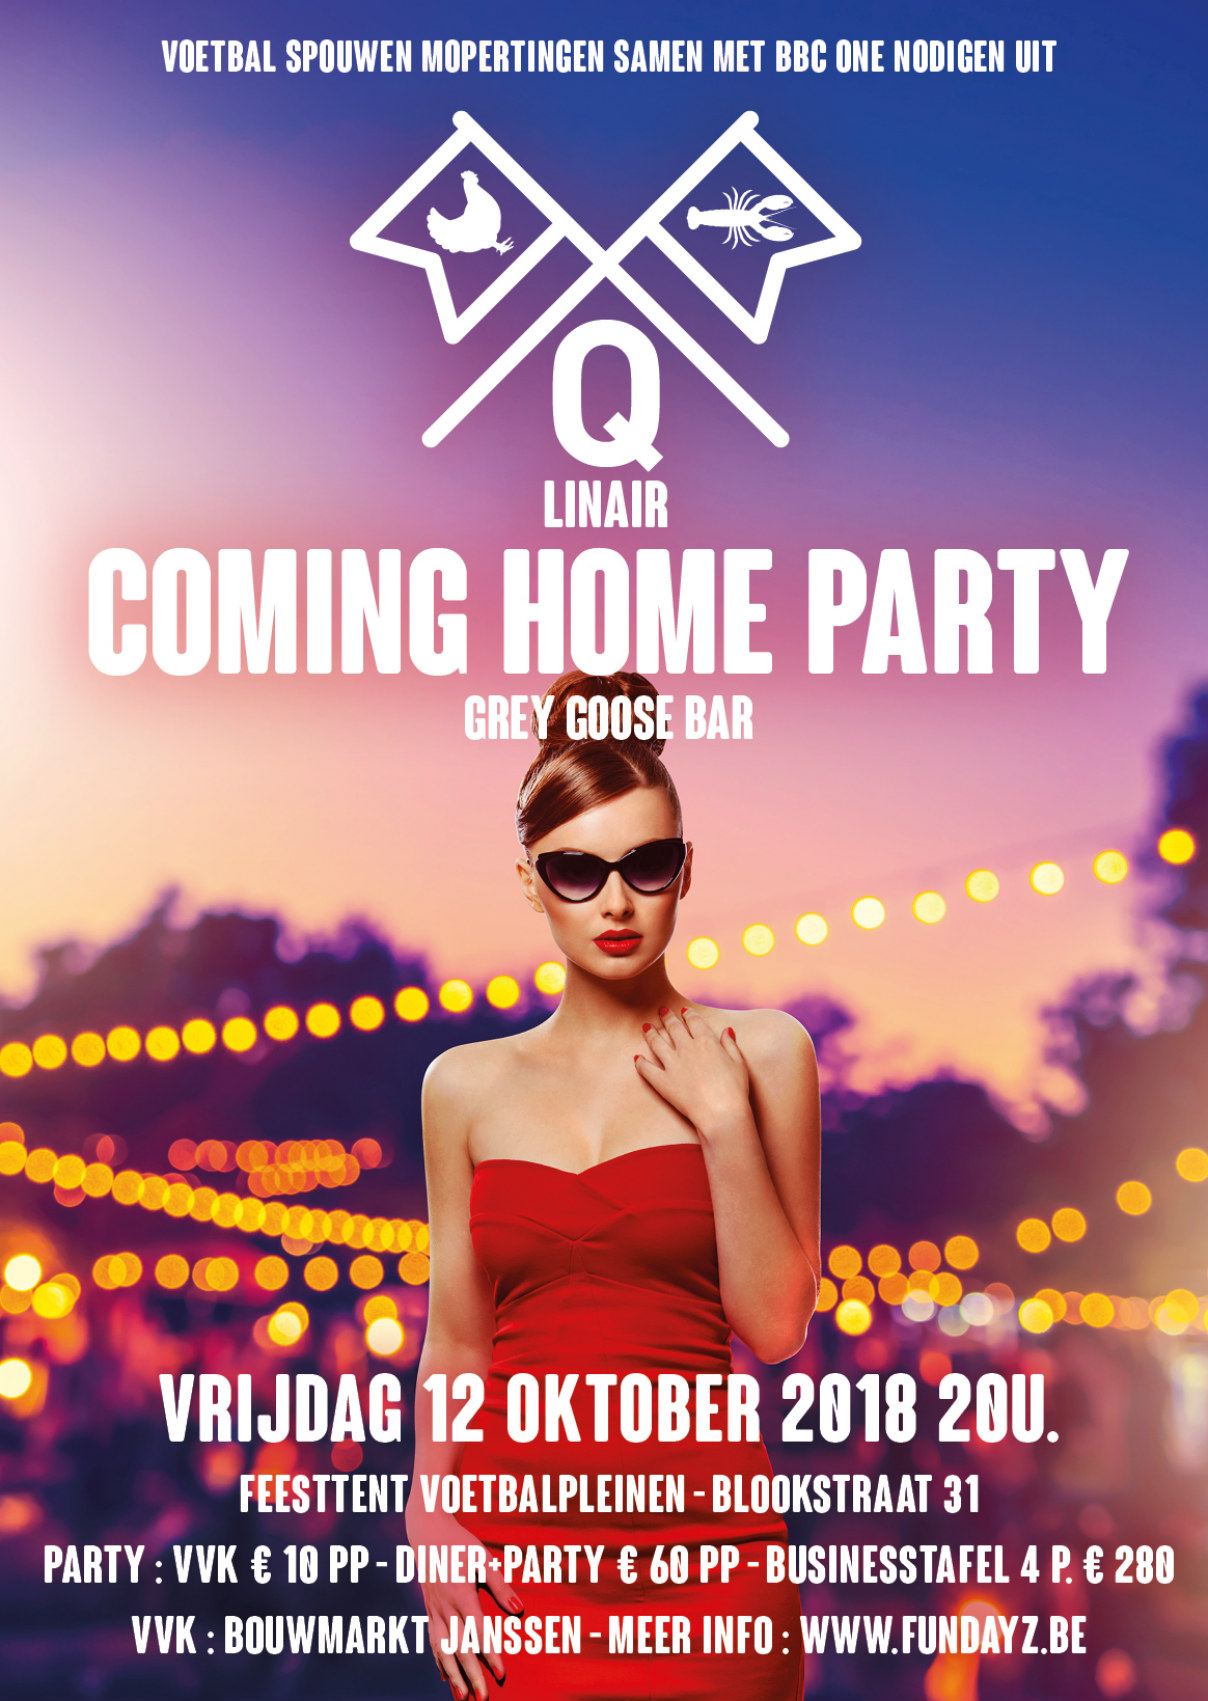 Q-linair Scharrels en Scharen met 'Qlinair coming home'- party